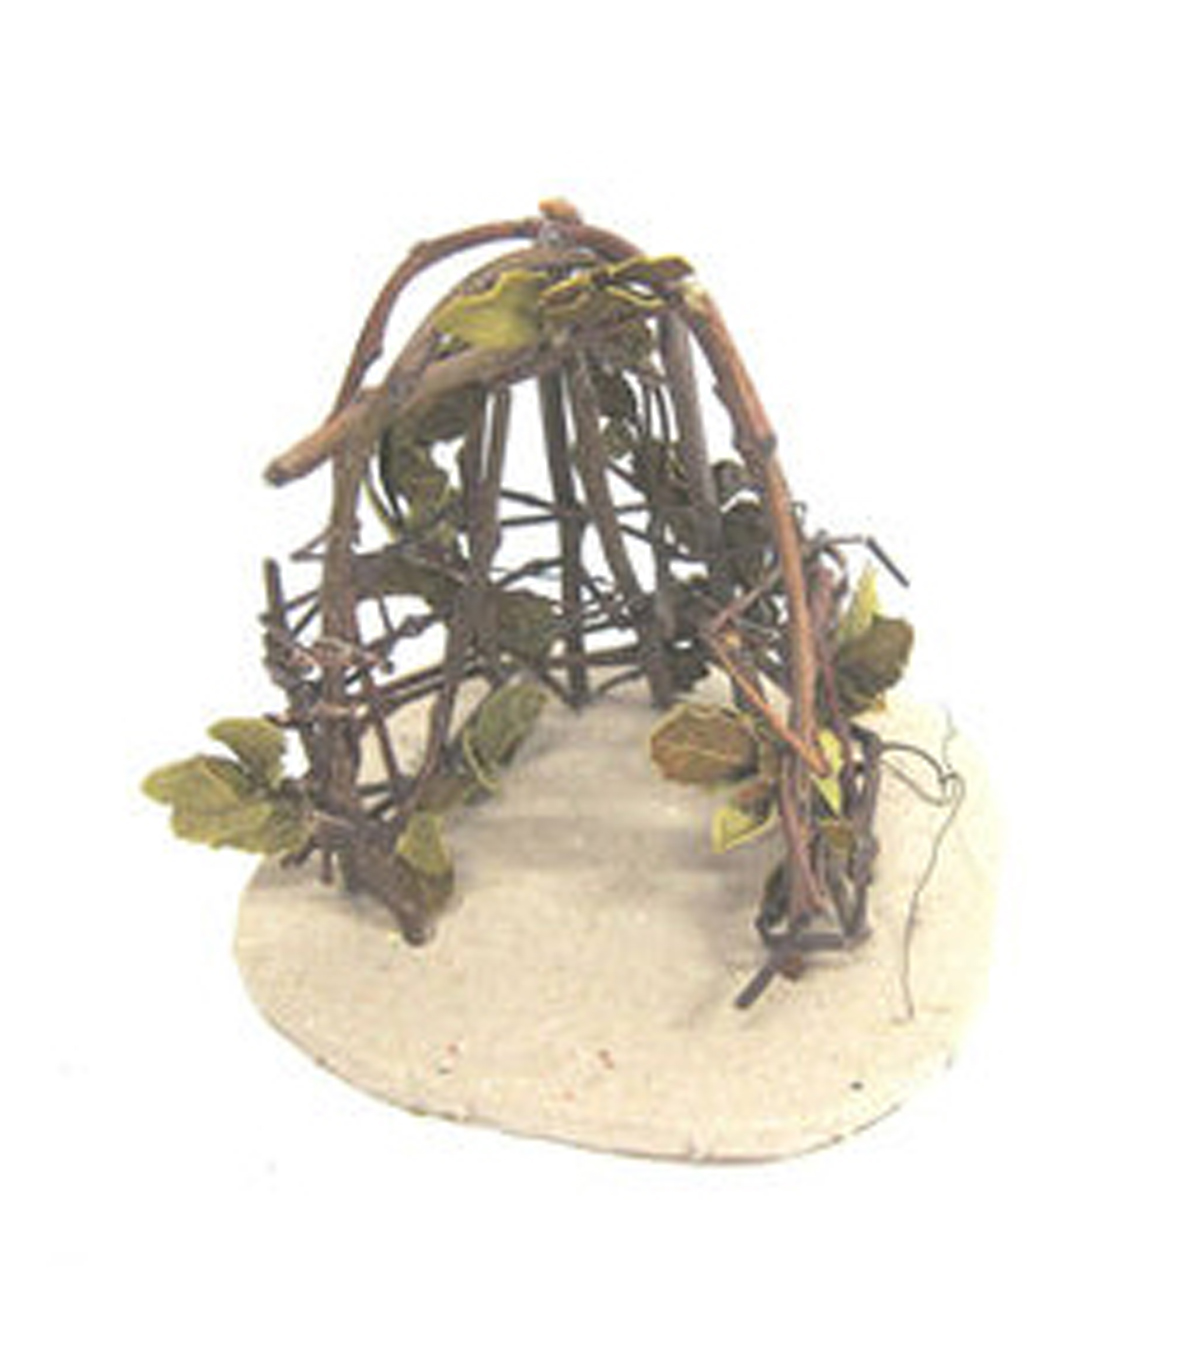 Fairy Garden Branch Nest